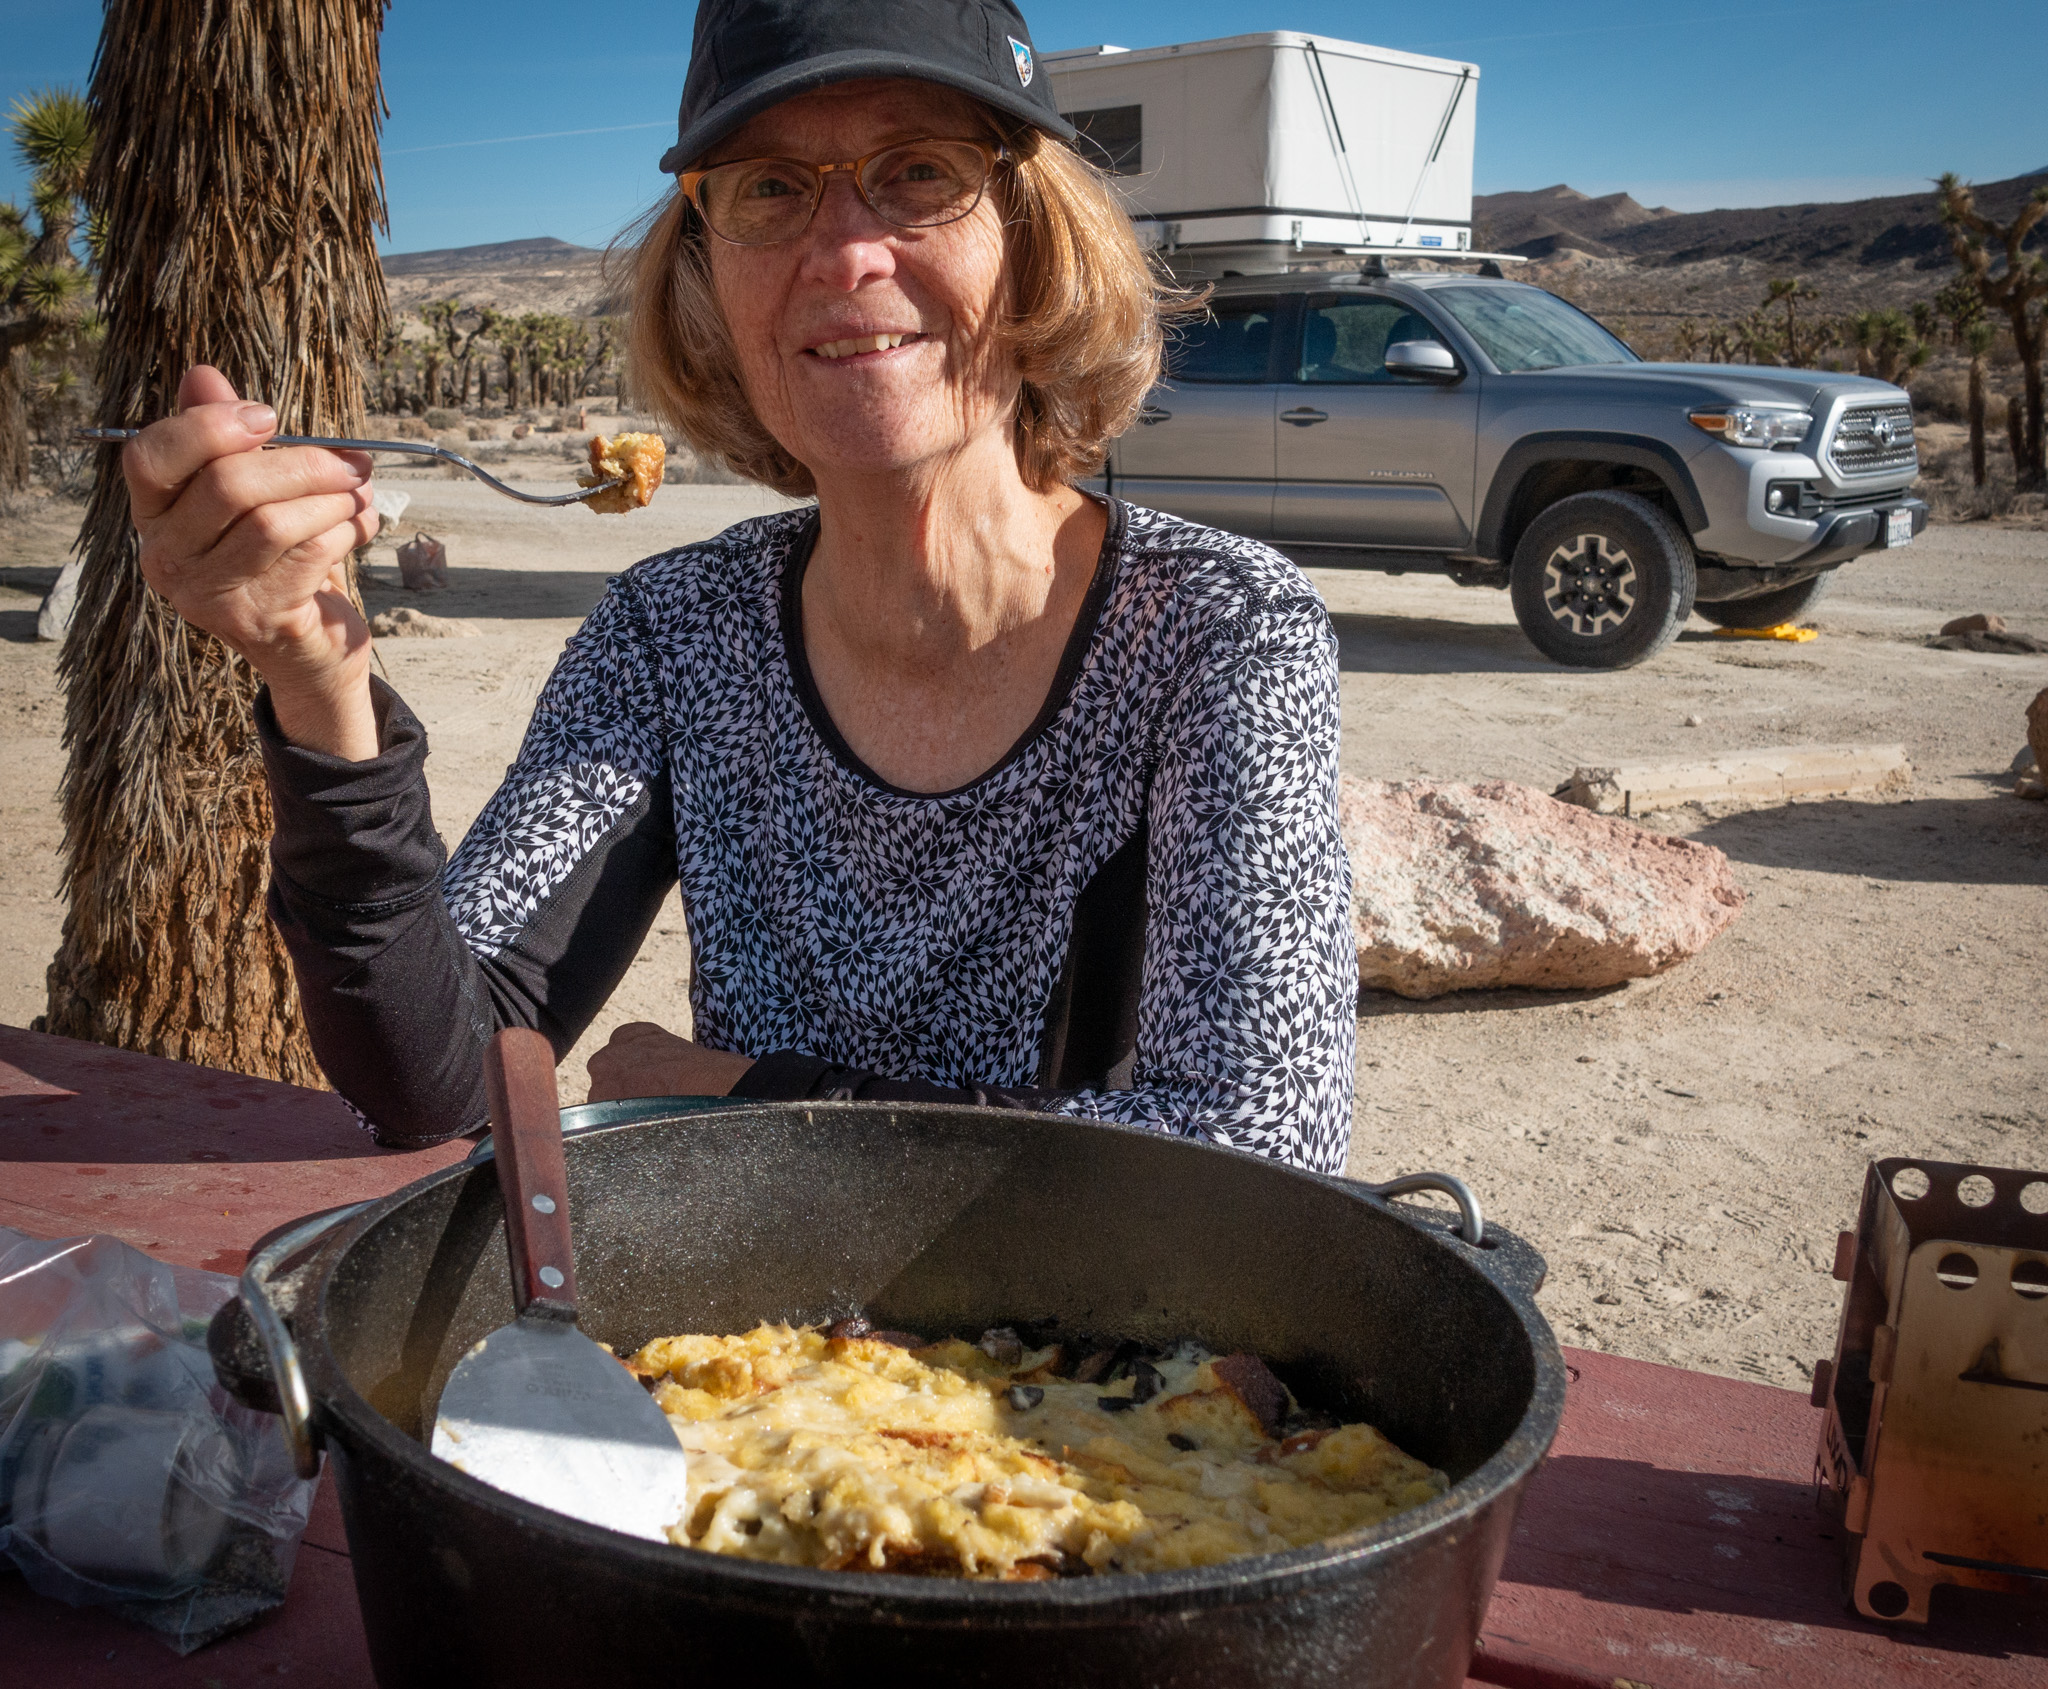 Joann at Red Rock Canyon State Park. Slow Food Breakfast in the Dutch Oven.